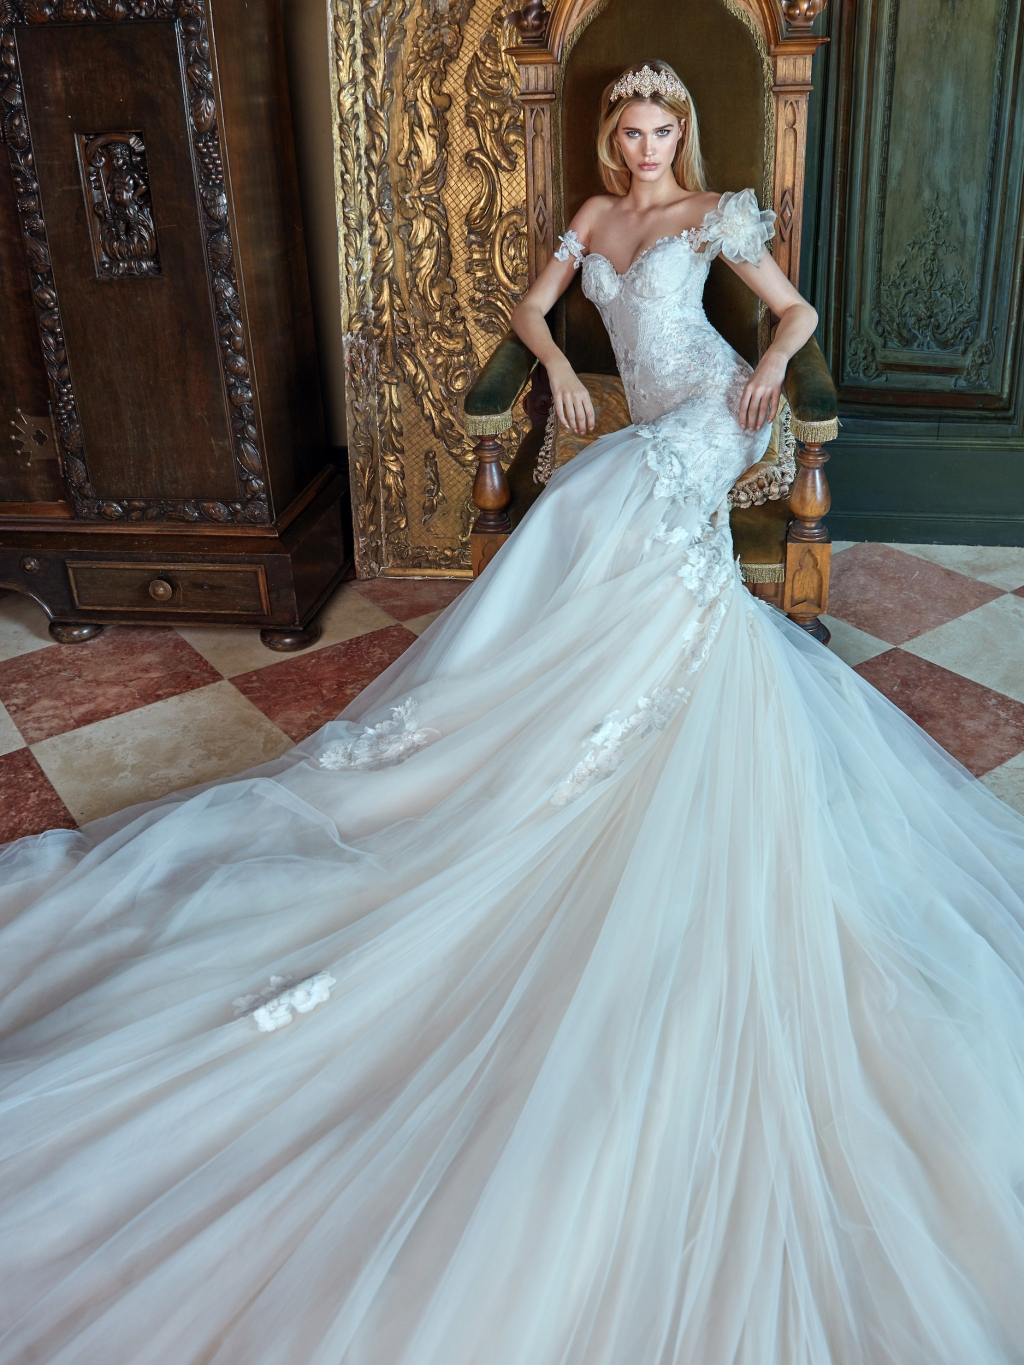 Galia Lahav Trunk Show in Hawaii 2017 | Honolulu Commercial